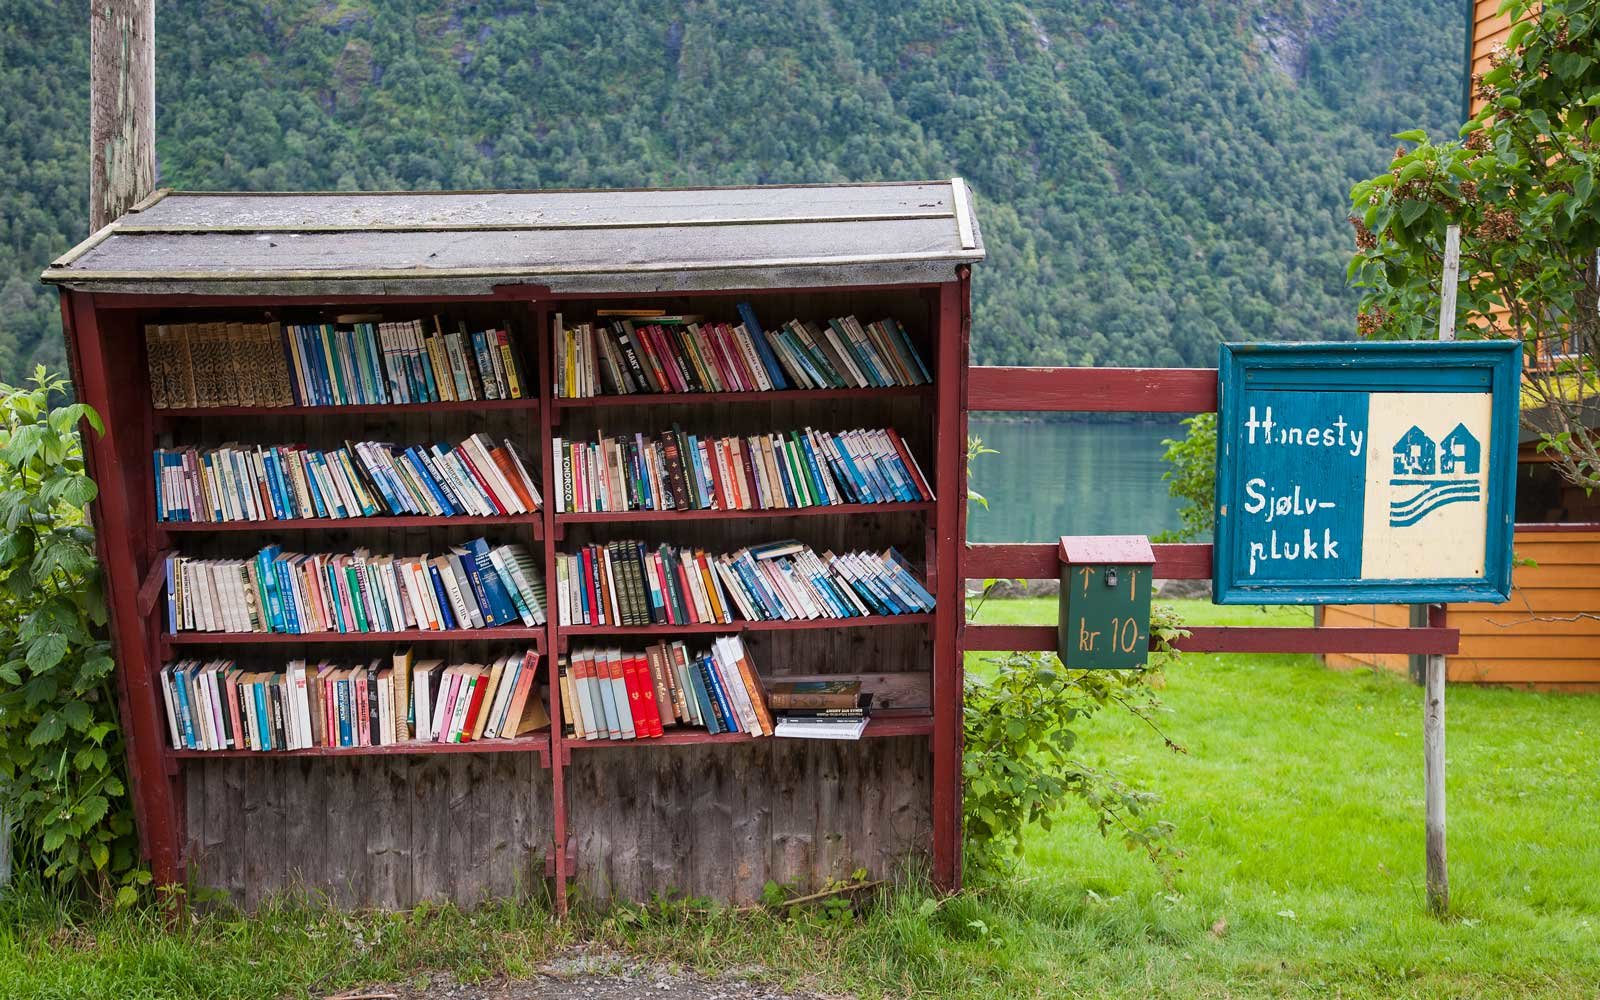 This Norwegian Town Has More Books Than People